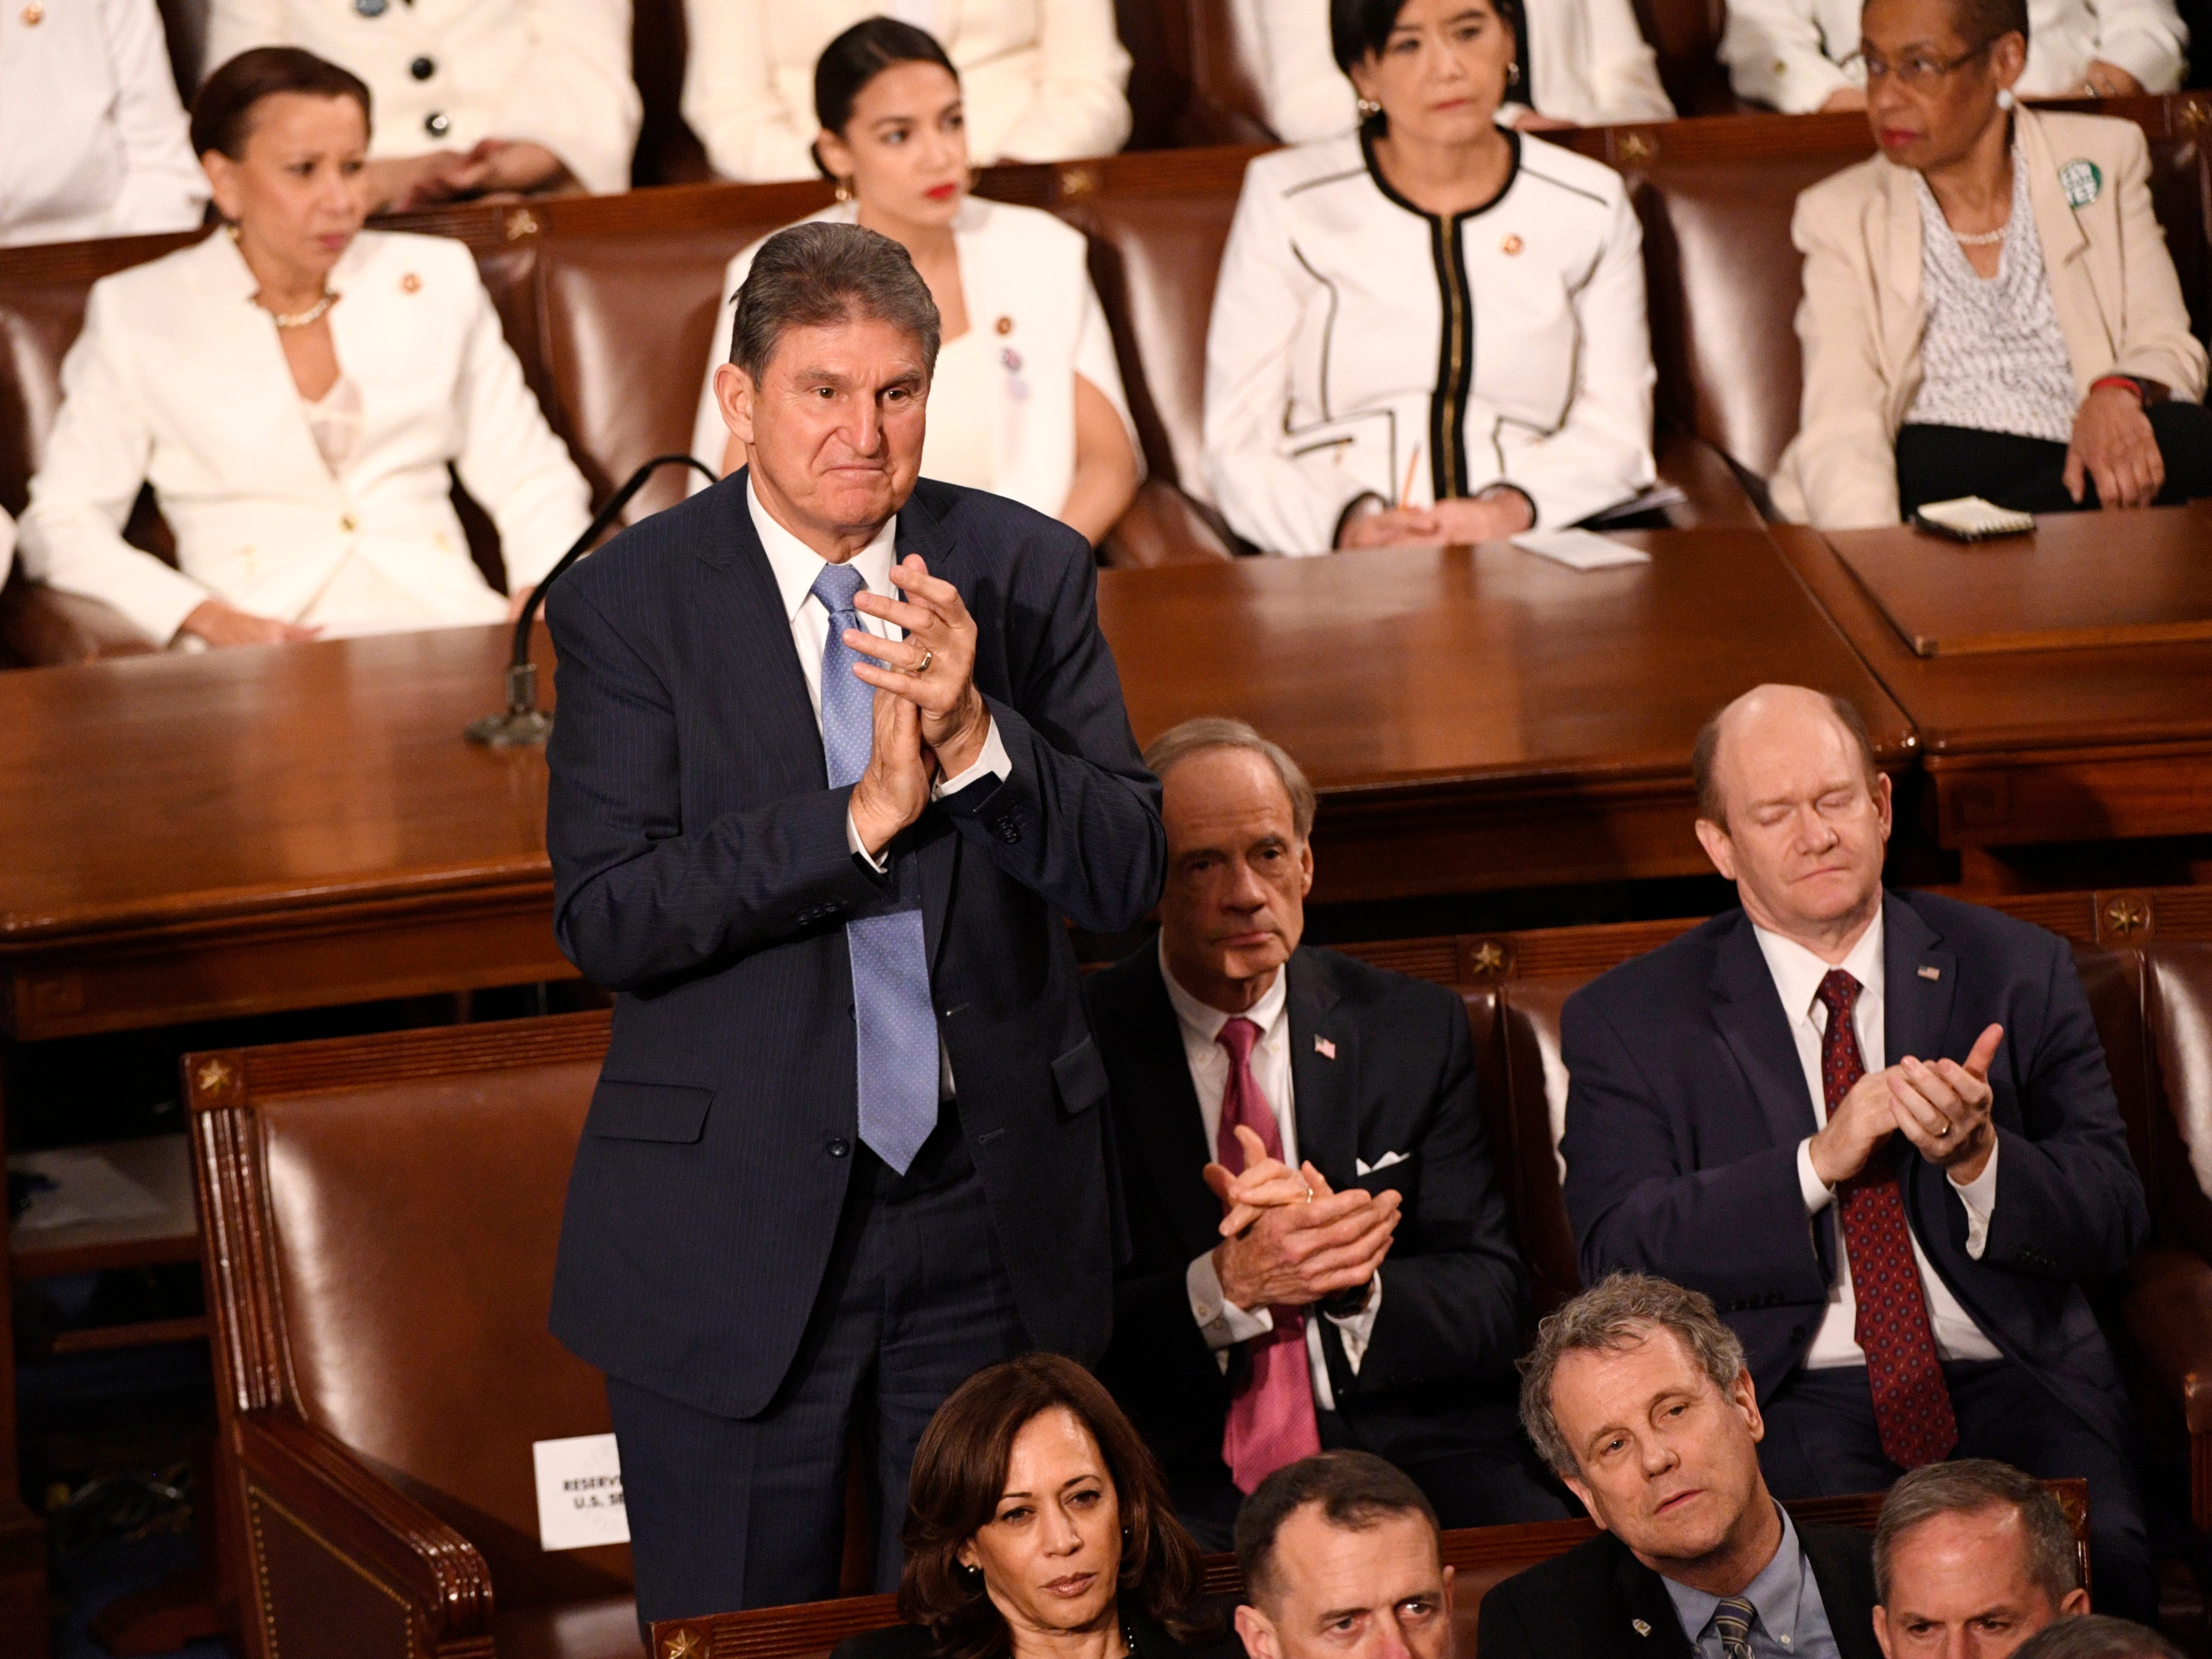 Sen. Joe Manchin (D-W.V.) applauds as President Donald Trump delivers the State of the Union address.